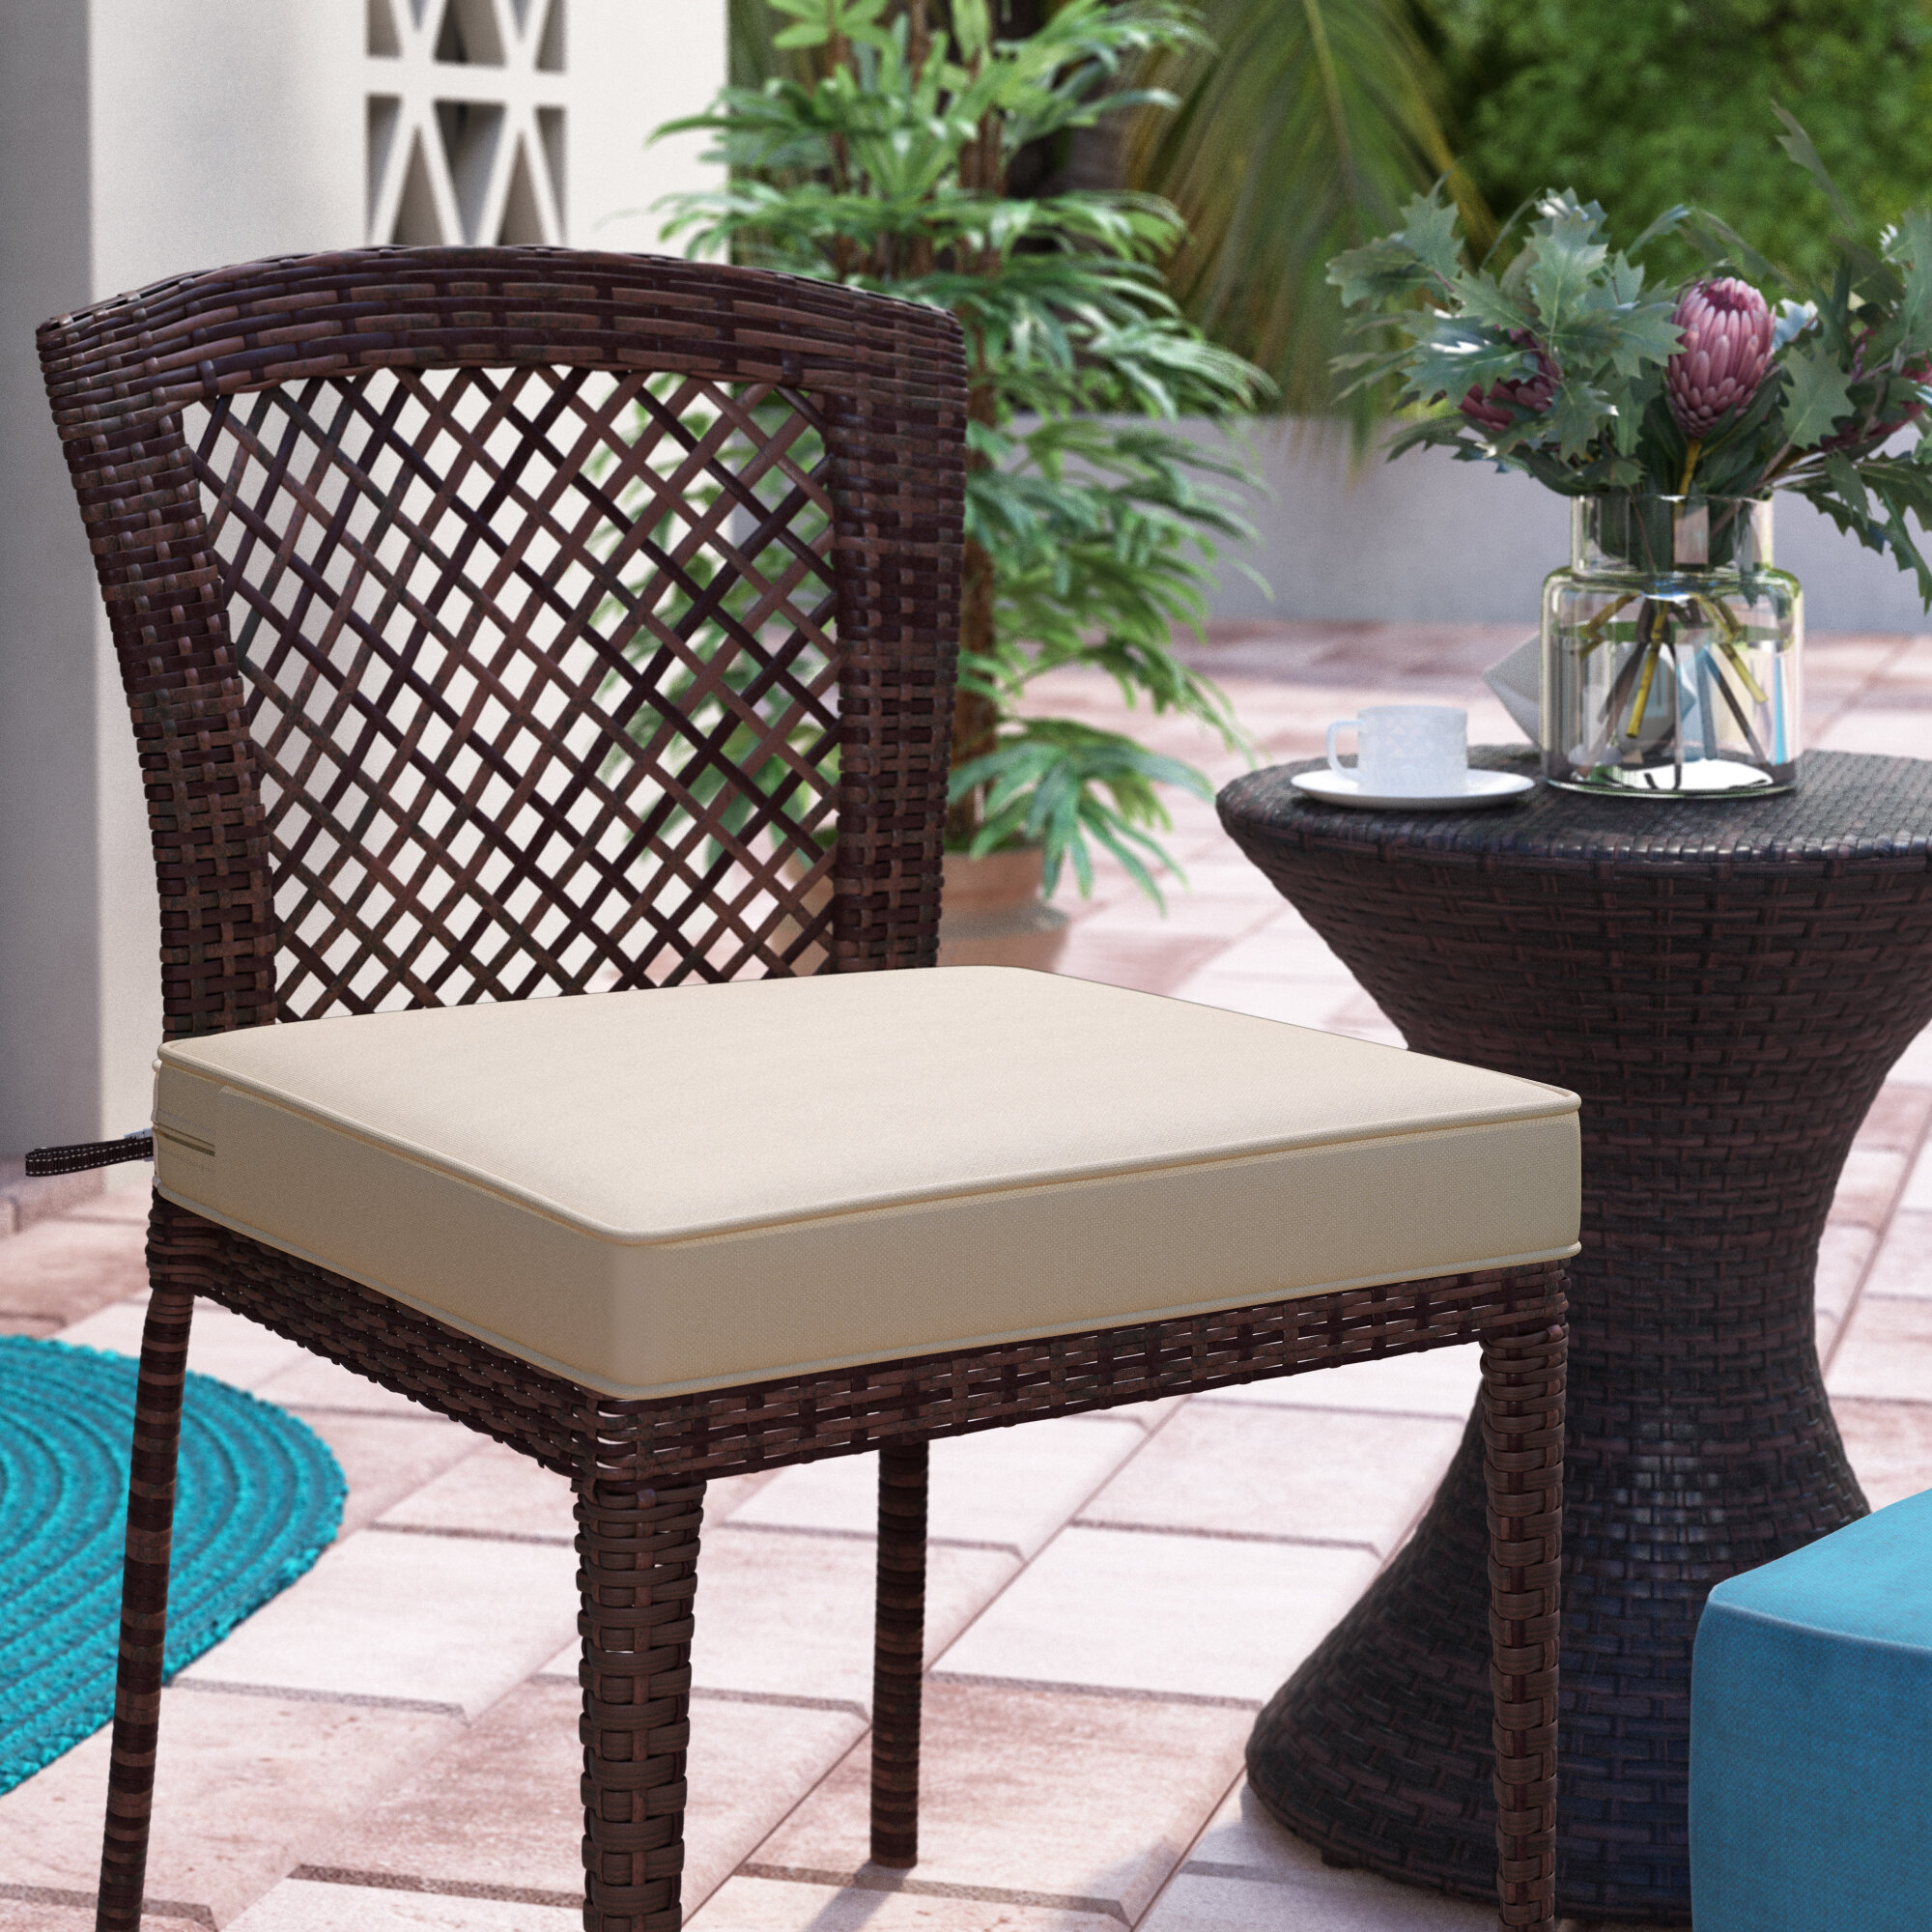 Fabulous Searcy Fadesafe Outdoor Lounge Chair Cushion Caraccident5 Cool Chair Designs And Ideas Caraccident5Info